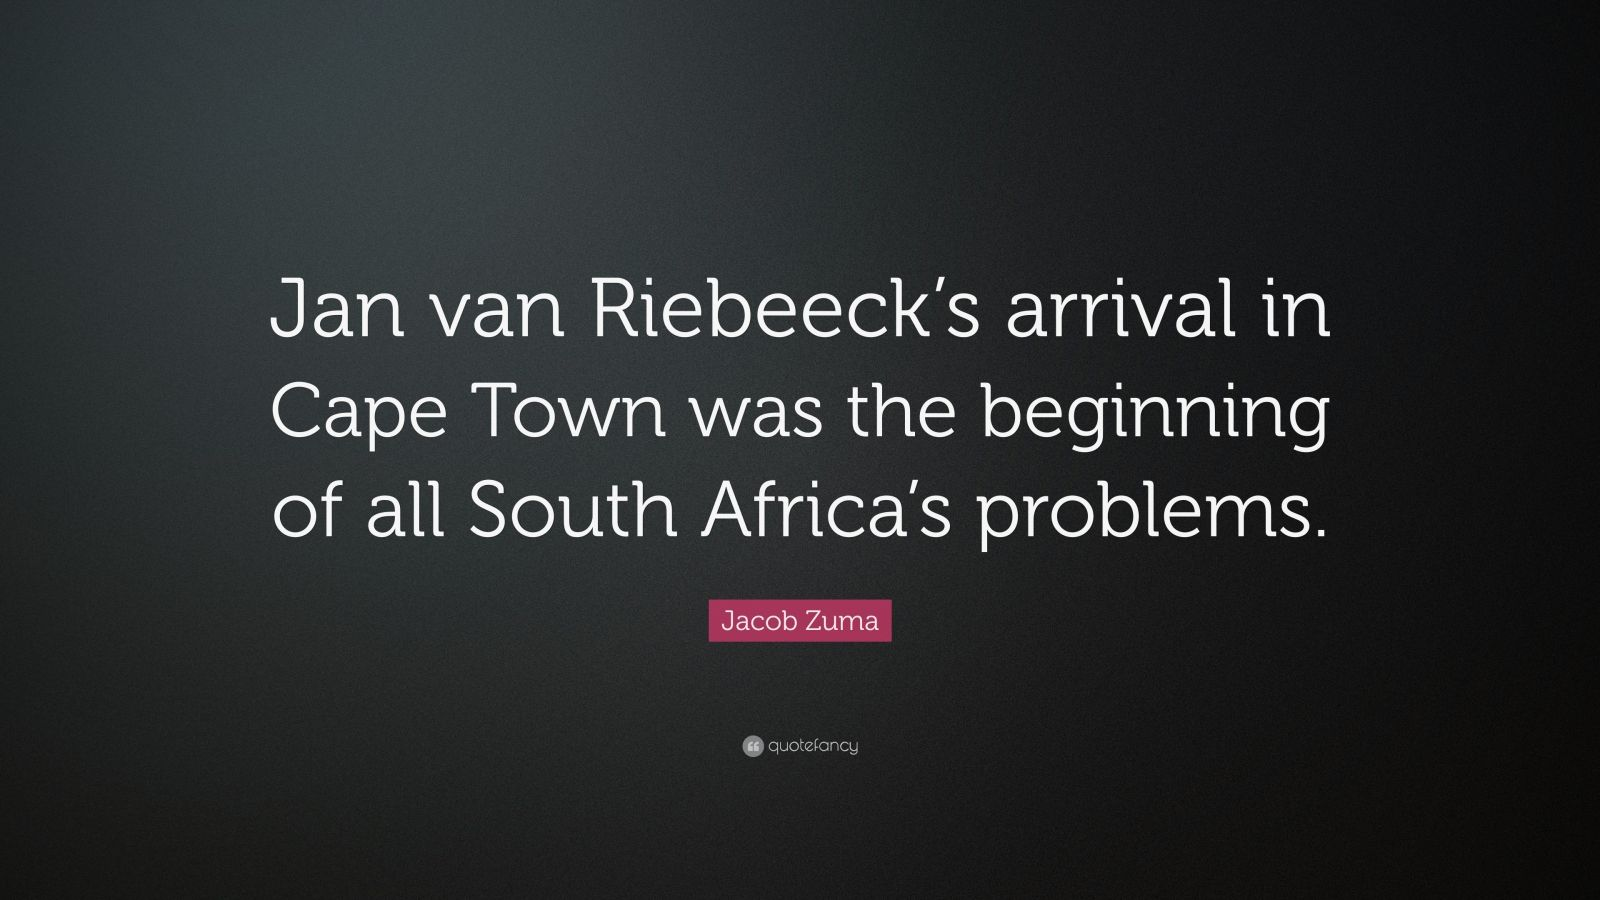 Steve Jobs Wallpaper Quotes Jacob Zuma Quote Jan Van Riebeeck S Arrival In Cape Town